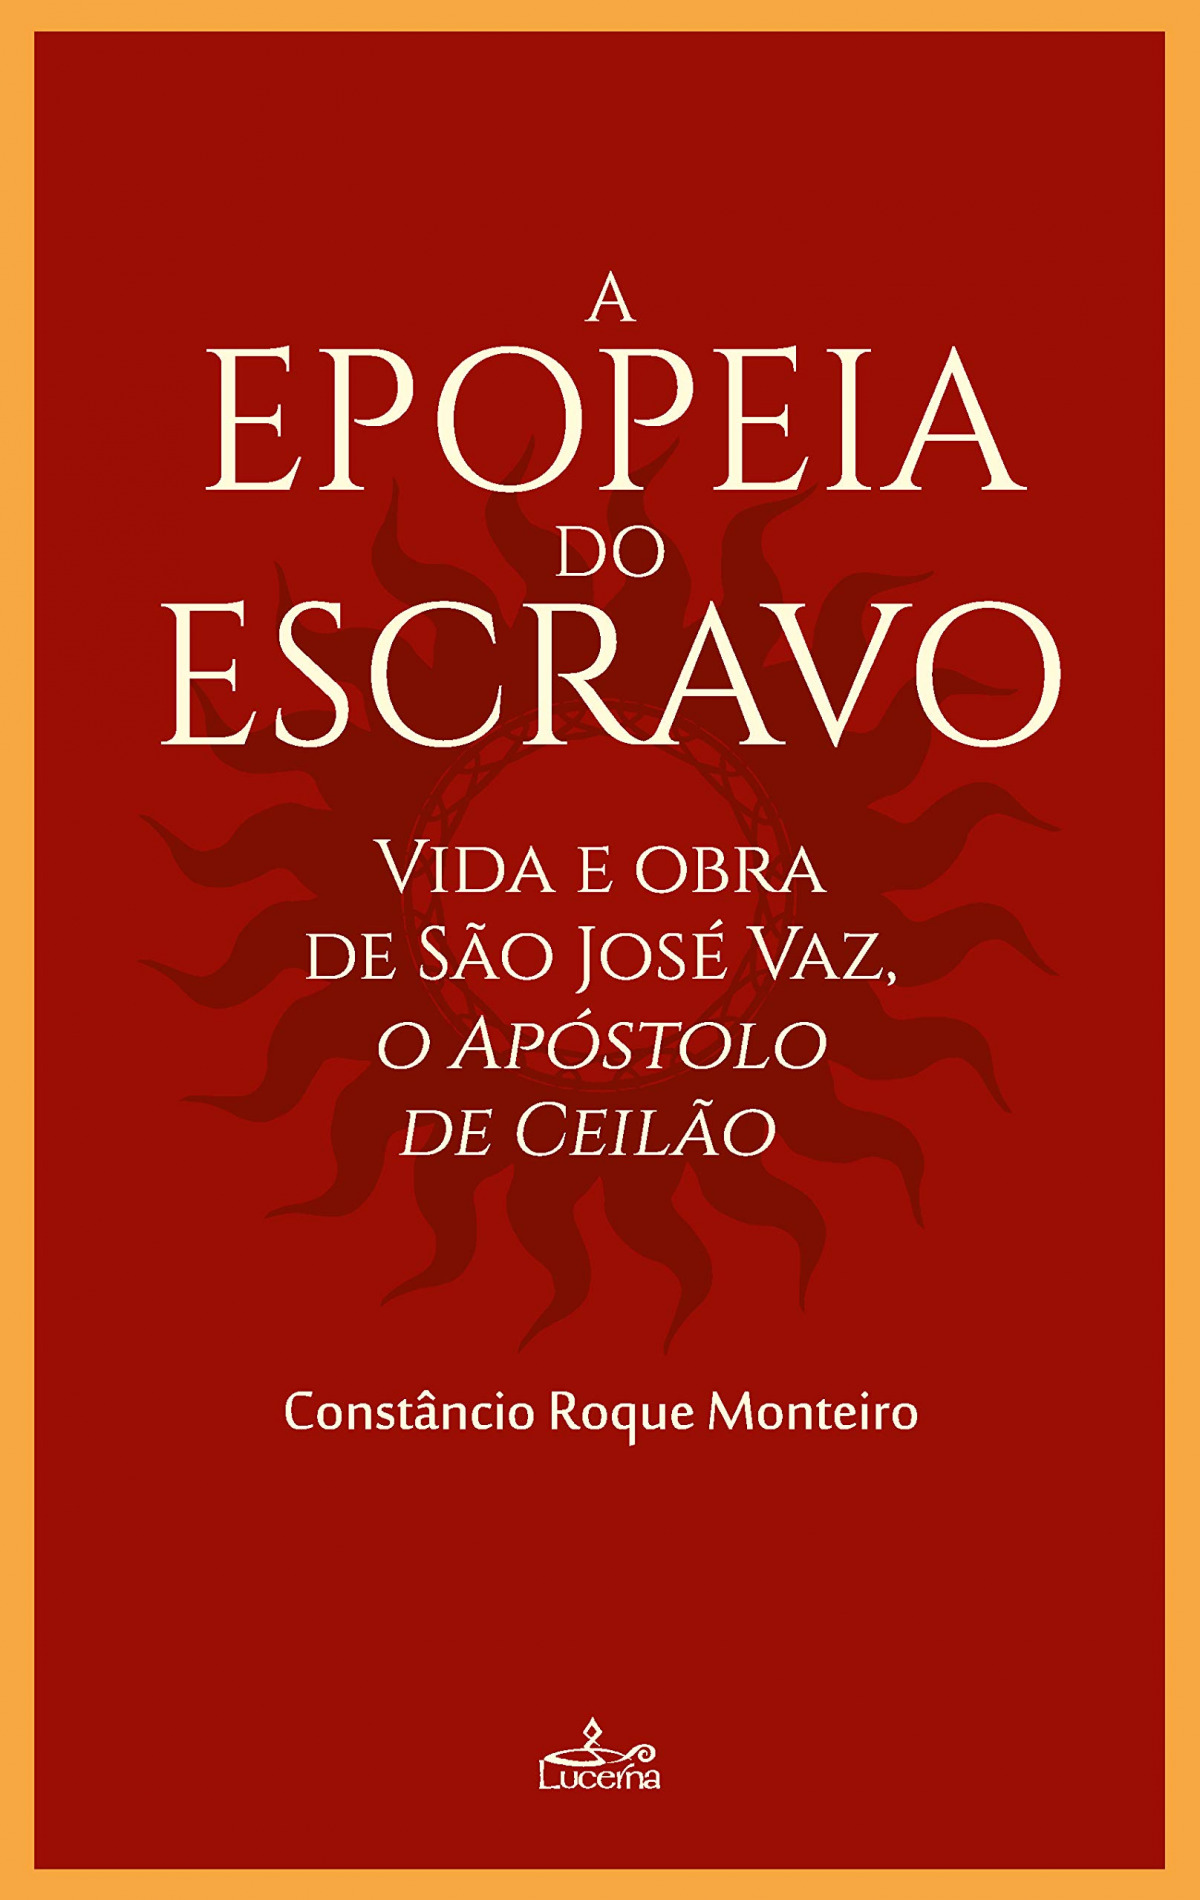 A EPOPEIA DO ESCRAVO